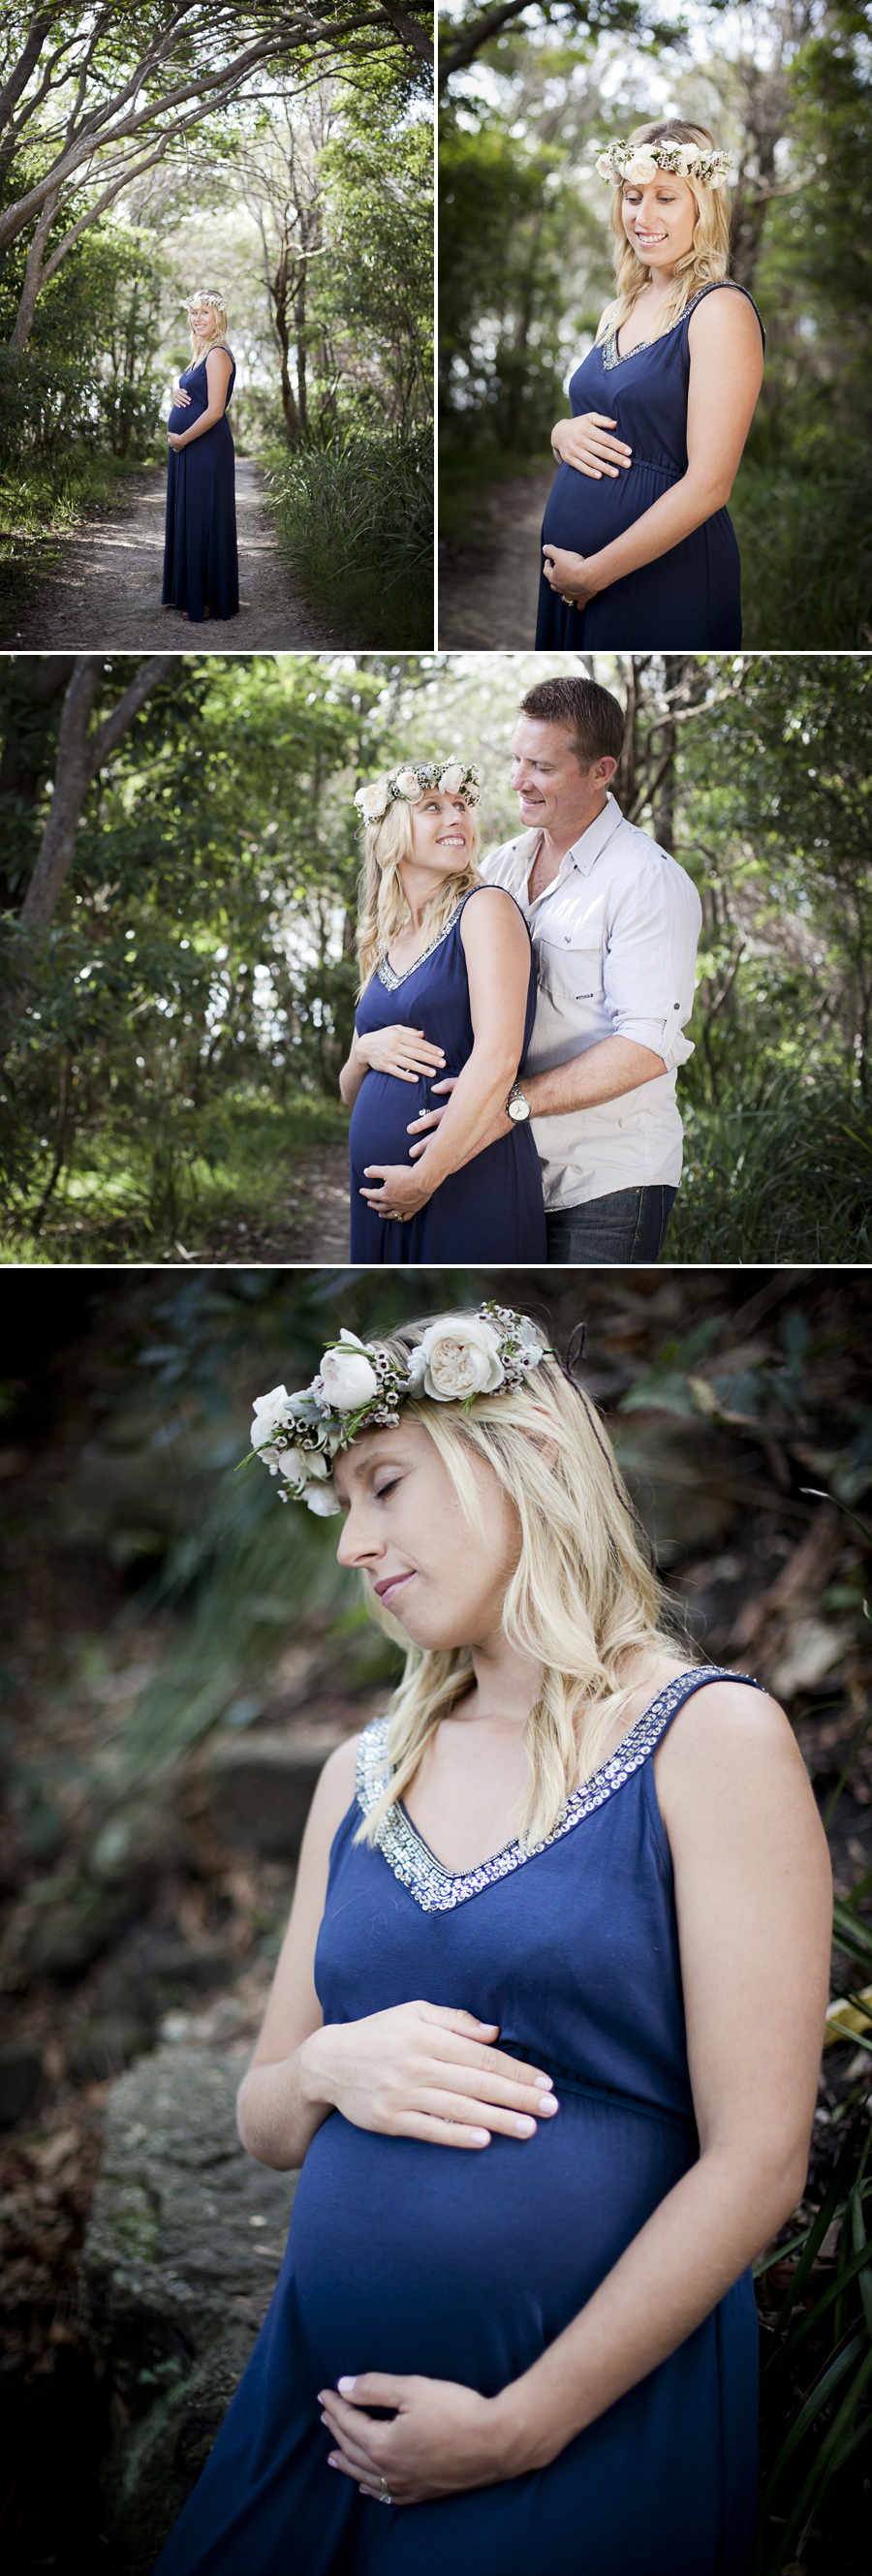 Maternity Photography Manly | Shelly Beach, NSW